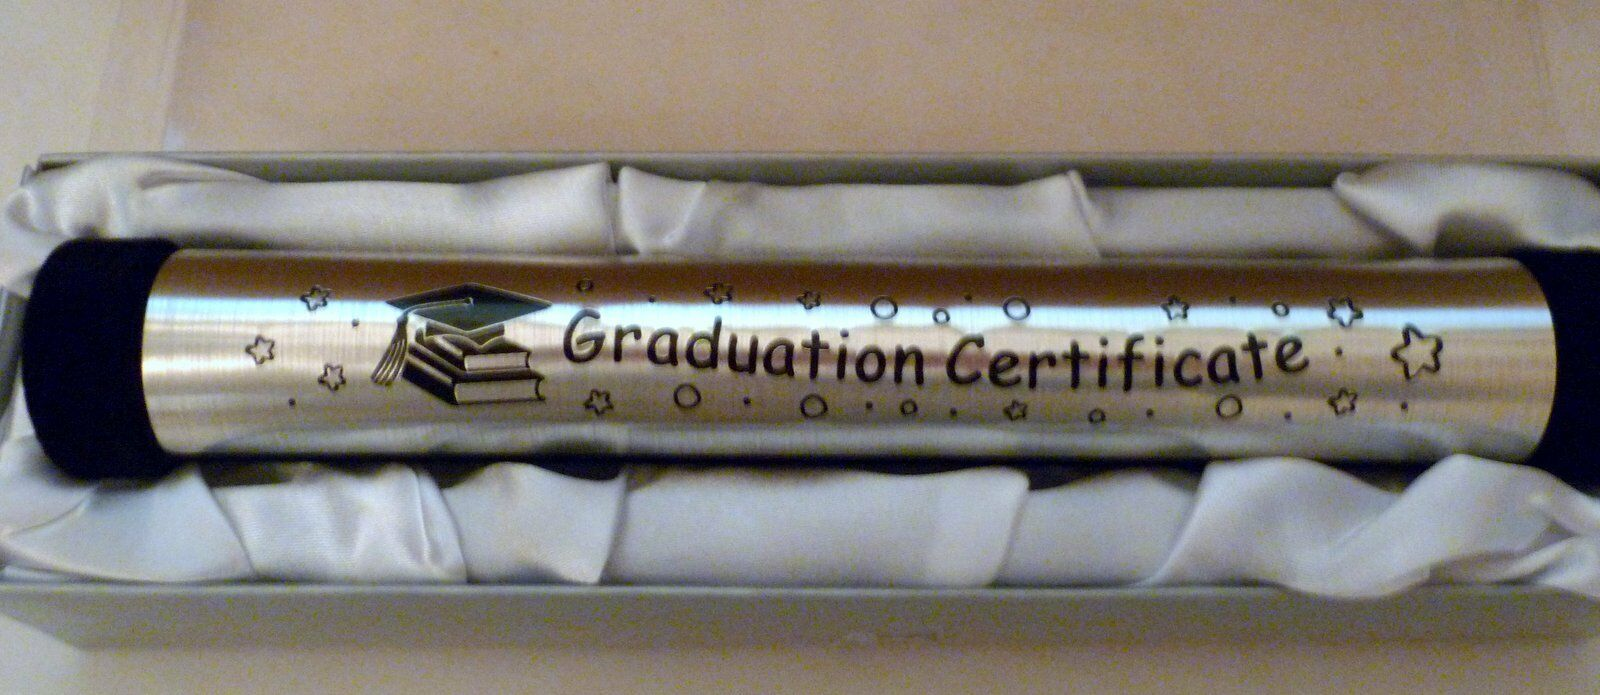 Graduation Certificate Holder In Satin Lined Silver Gift Box Tied With Ribbon For Sale Online